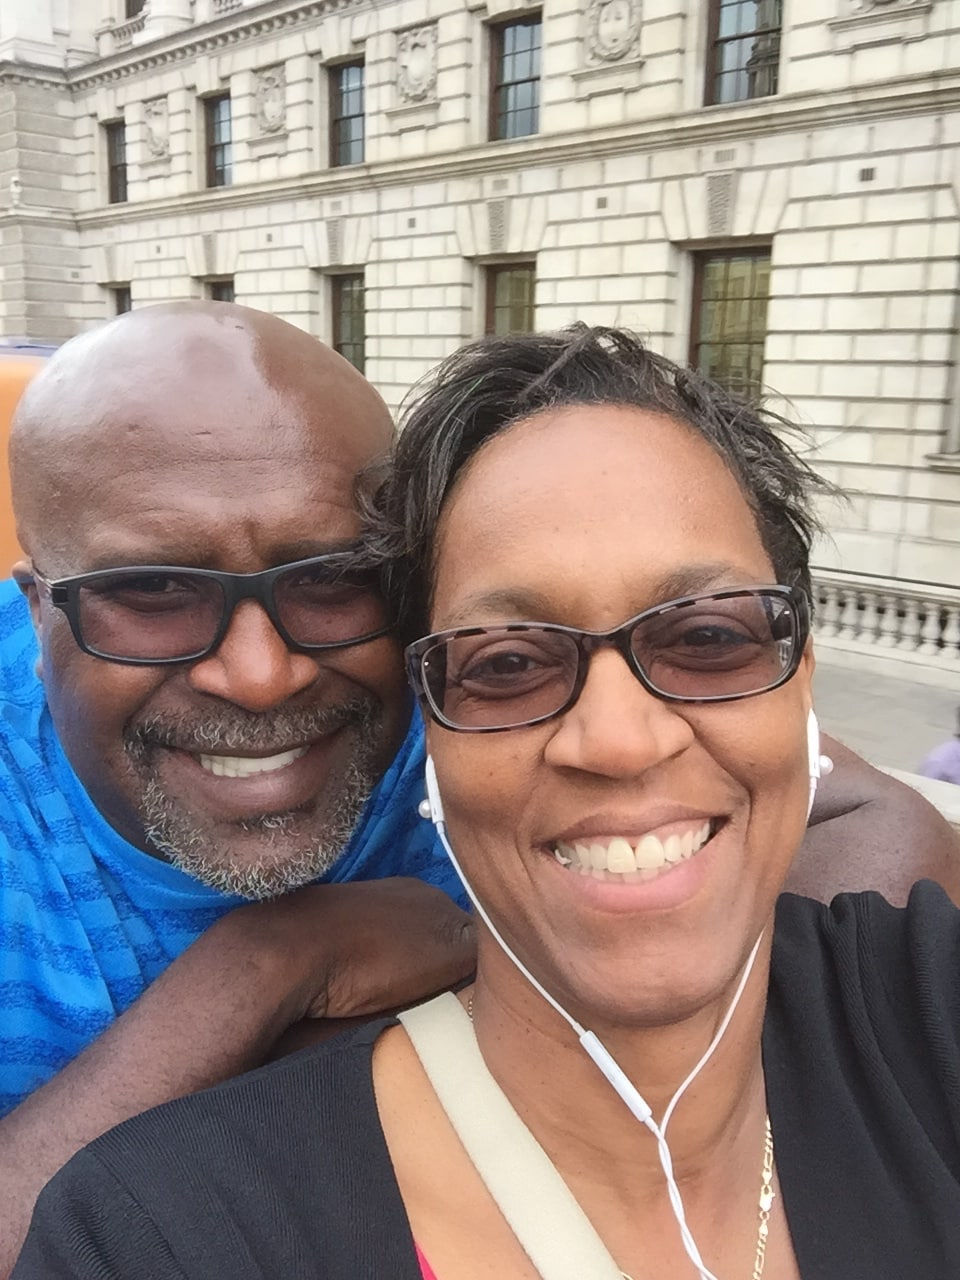 Recent empty nester who enjoys traveling (when not